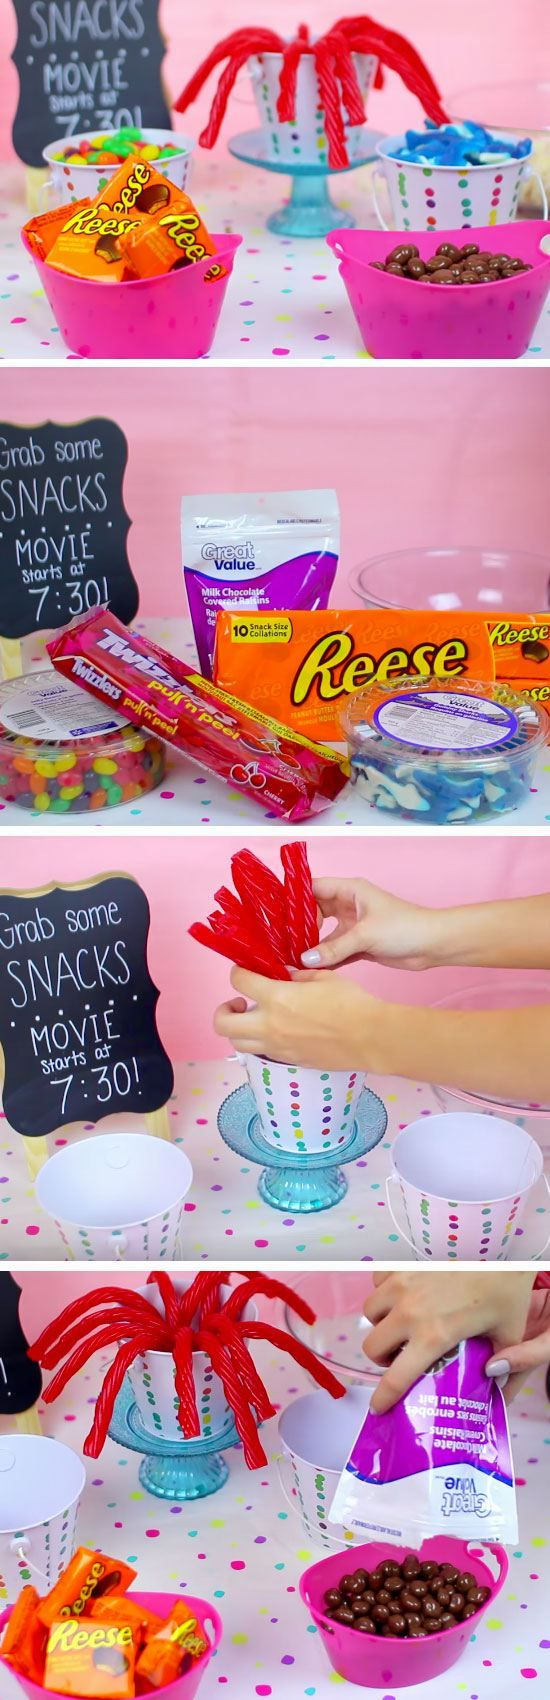 Treat Cups   19 DIY Movie Night Ideas for Teens that will get the party started!